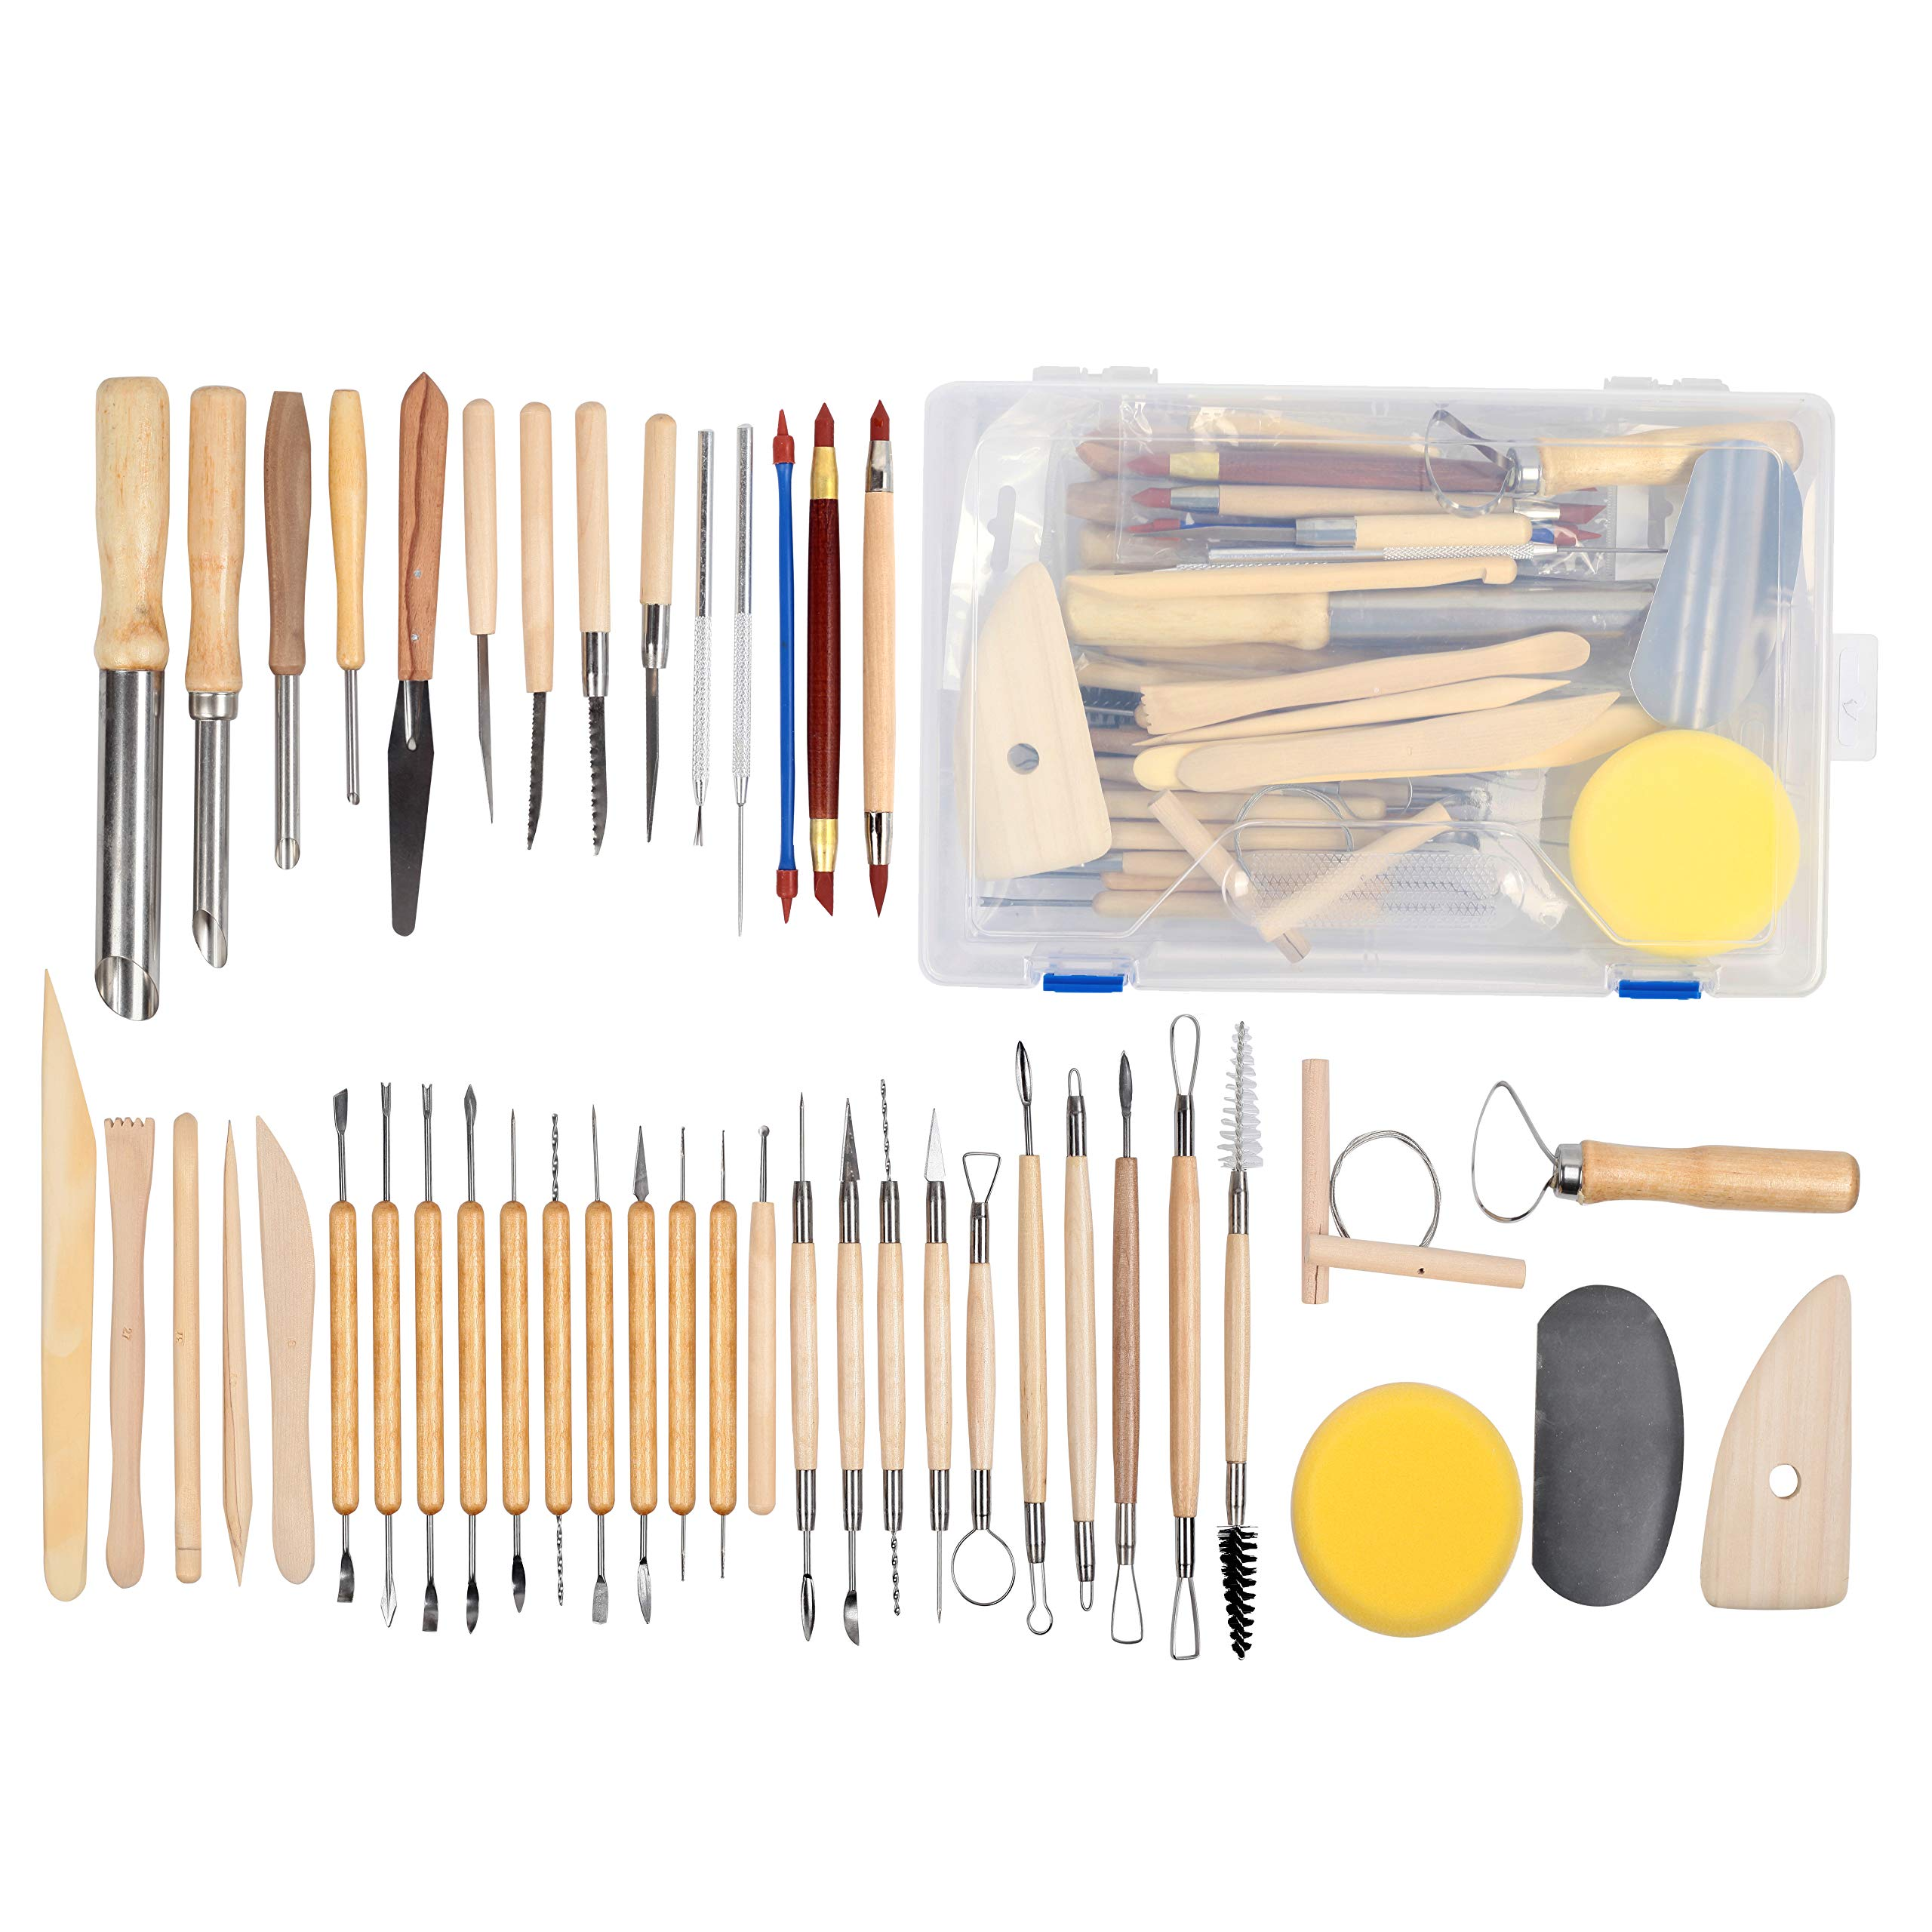 Falling in Art 45pcs Clay Sculpting Tool Kit, Pottery Ceramic Tool Set with Plastic Box by Falling in Art (Image #1)